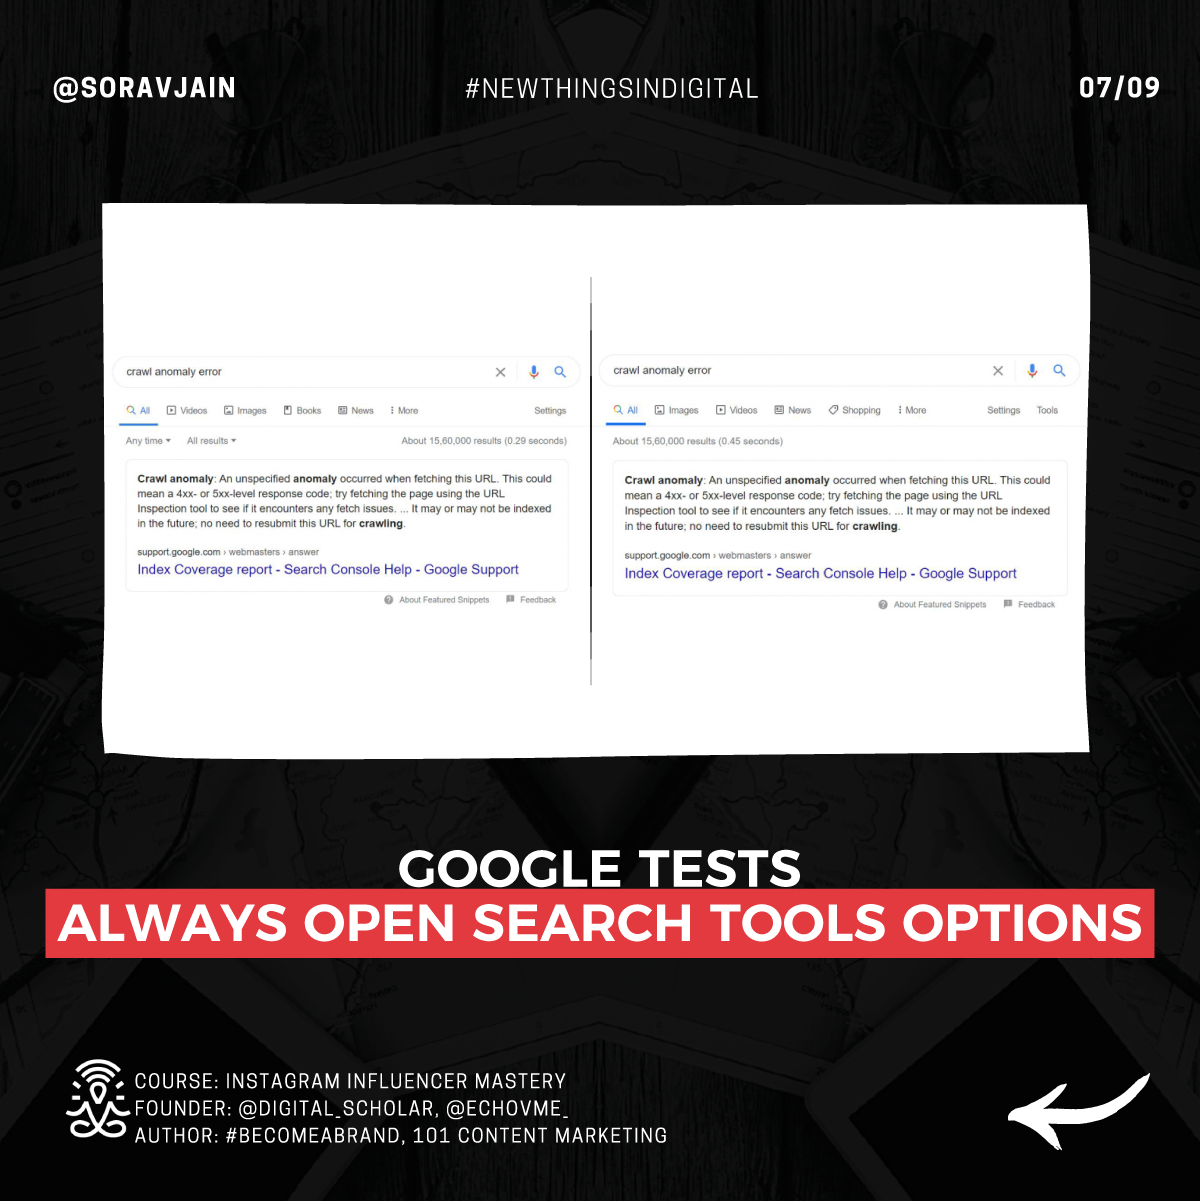 Google Tests Always Open Search Tools Options